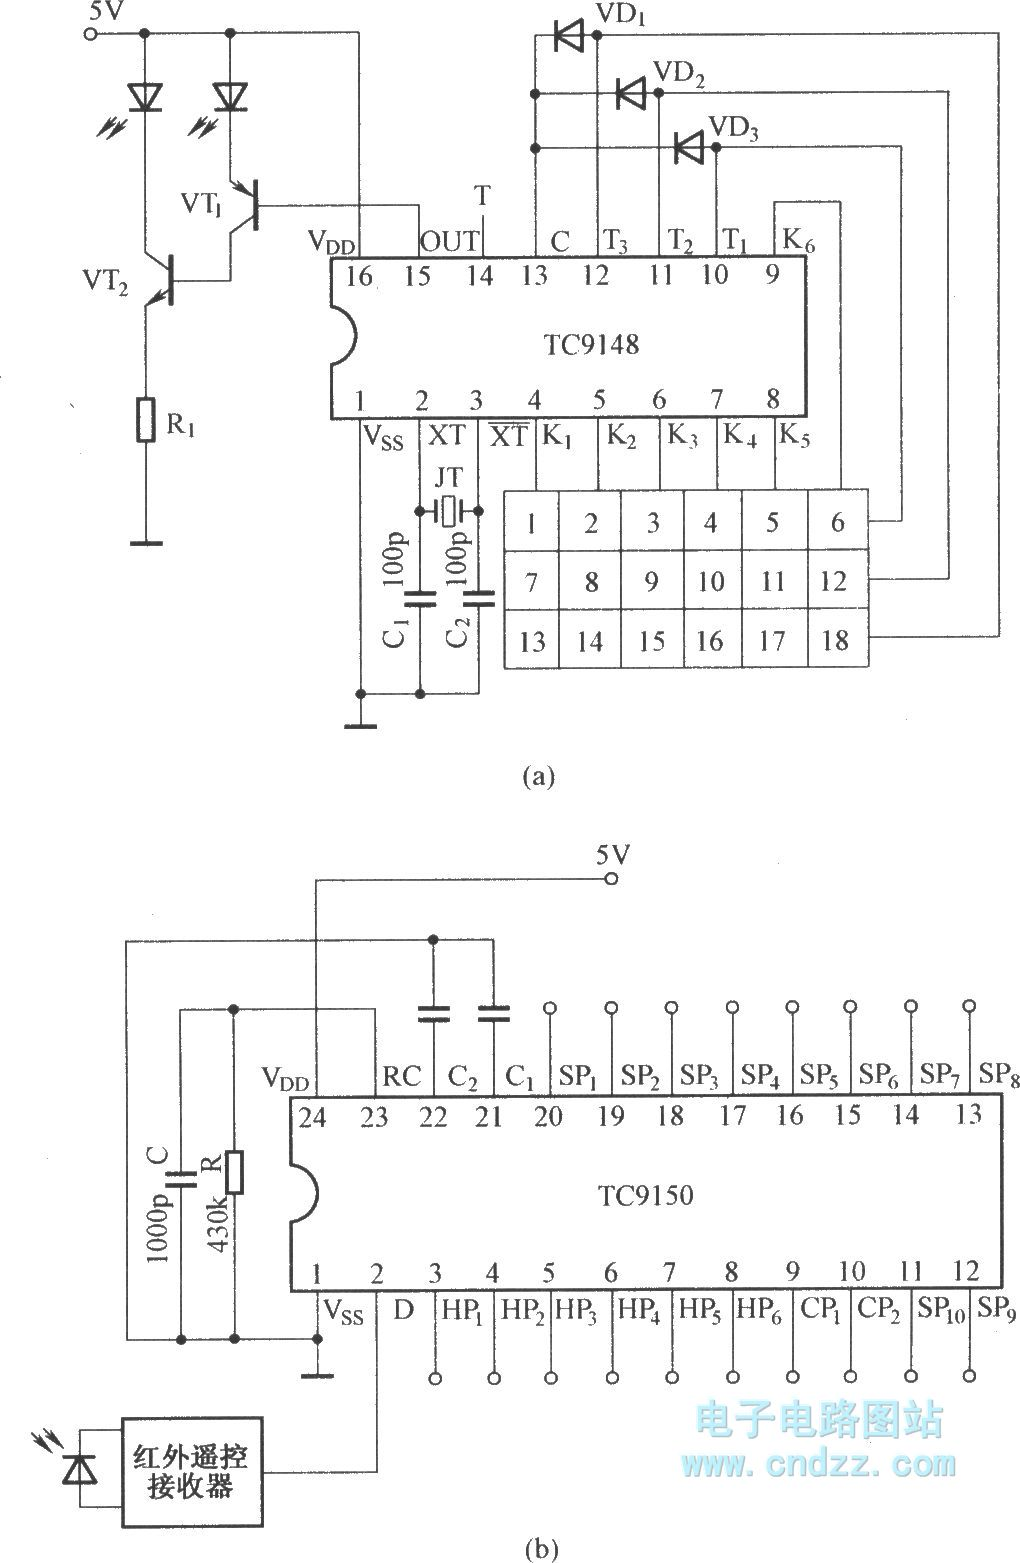 18 Way Infrared Remote Control System Circuit Diagram Wwwseekiccom Circuitdiagram Powersupplycircuit Negativevoltage